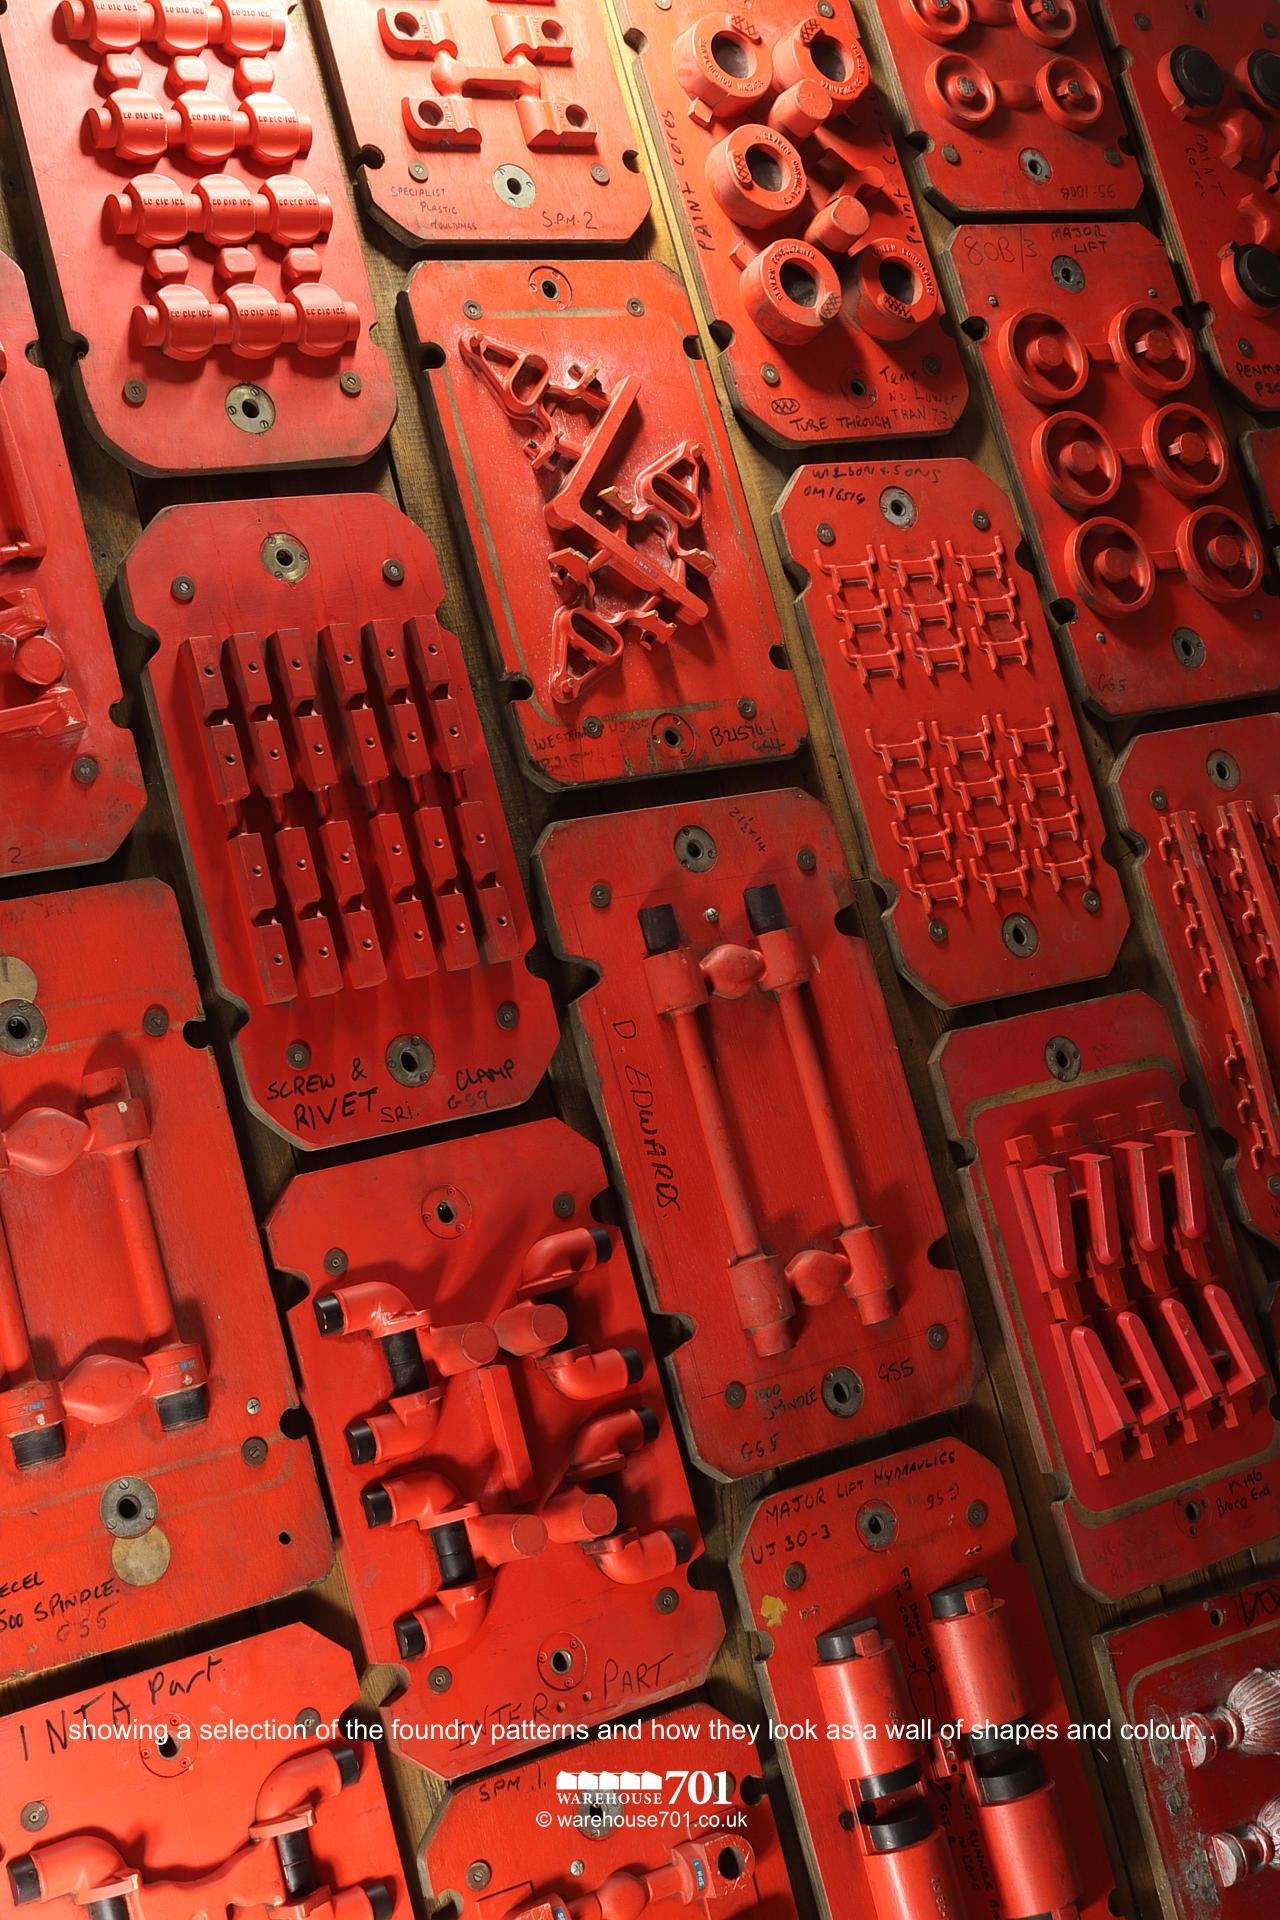 Salvaged Foundry Patterns or Moulds (No's 1 to 3) for Shop, Retail and Home Display #7